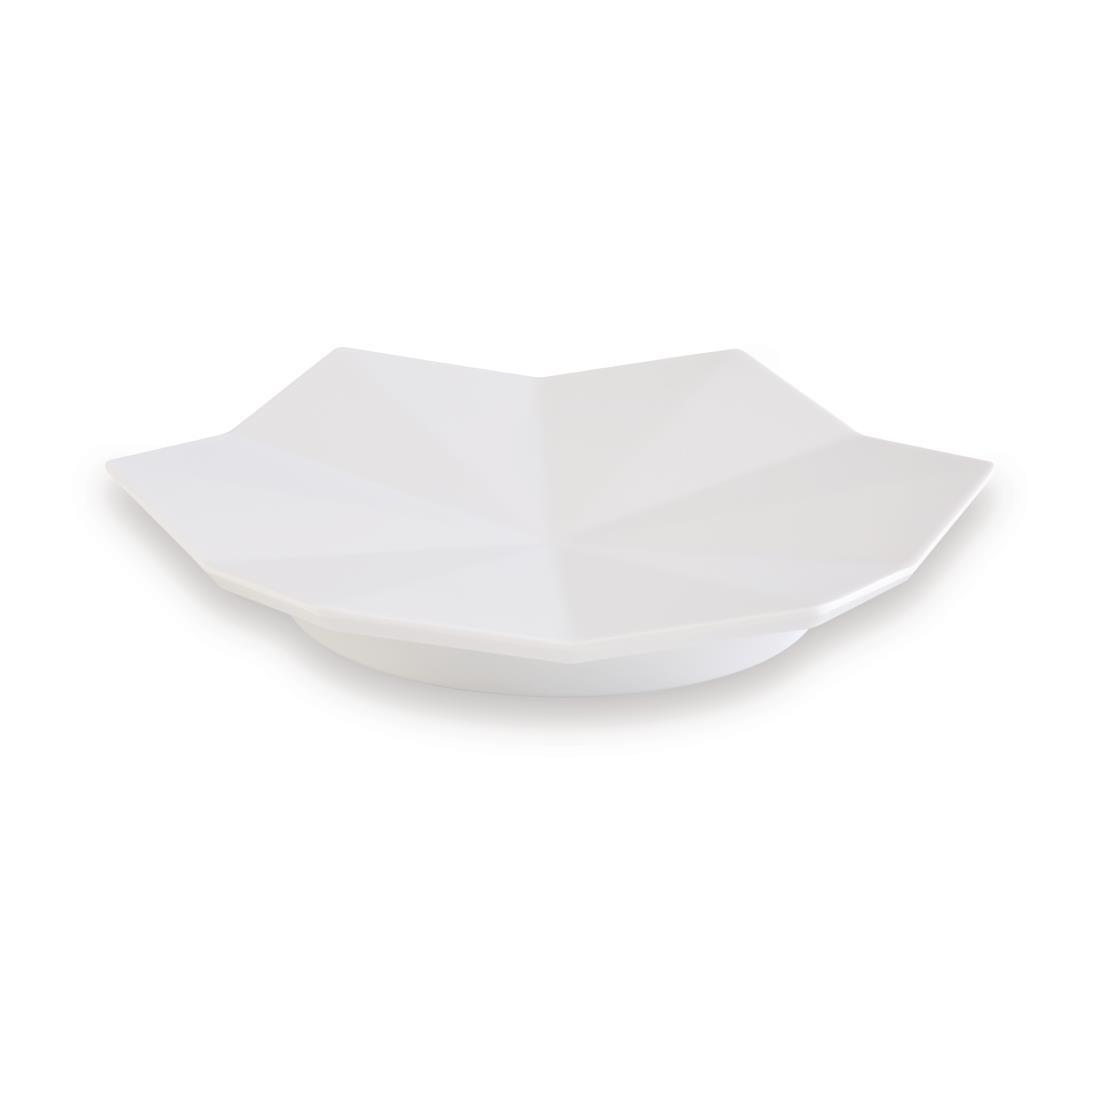 DT781 - APS+ Medium Lotus Leaf Plate White 175mm - Each - DT781